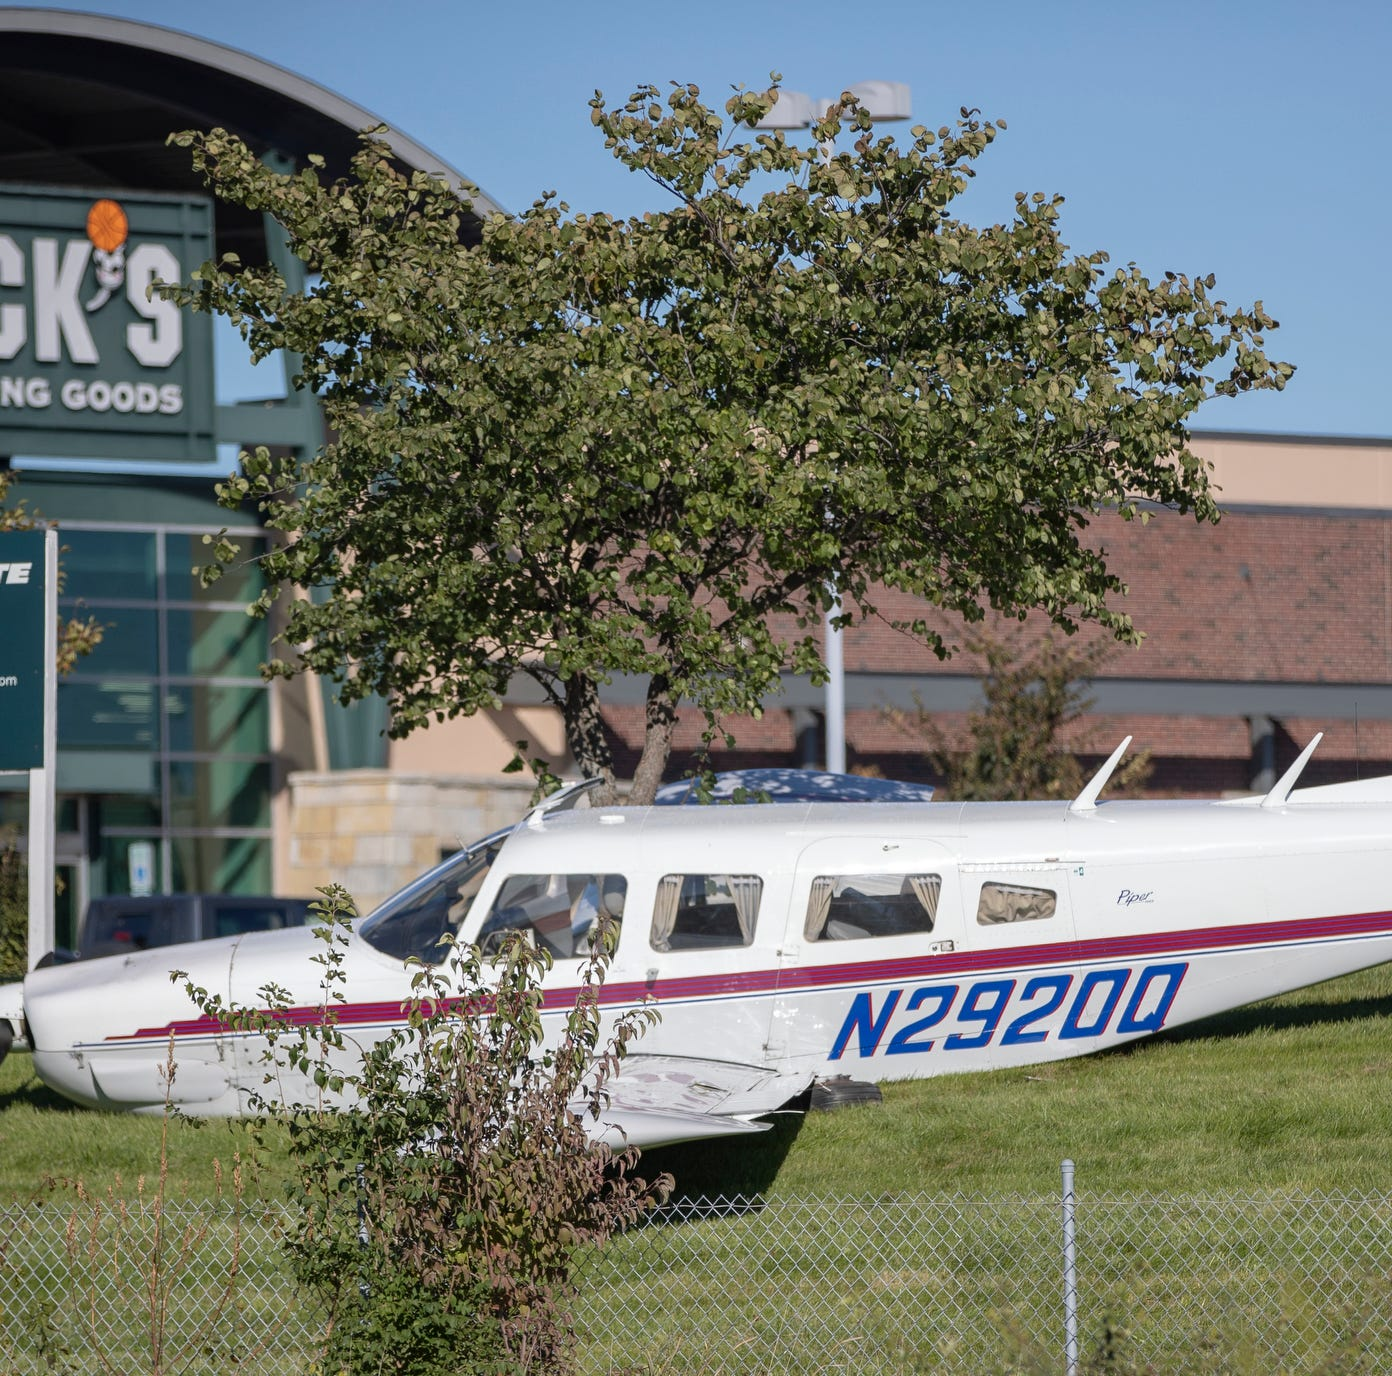 Pilot escapes injury after setting plane down in Dick's Sporting Goods' parking lot